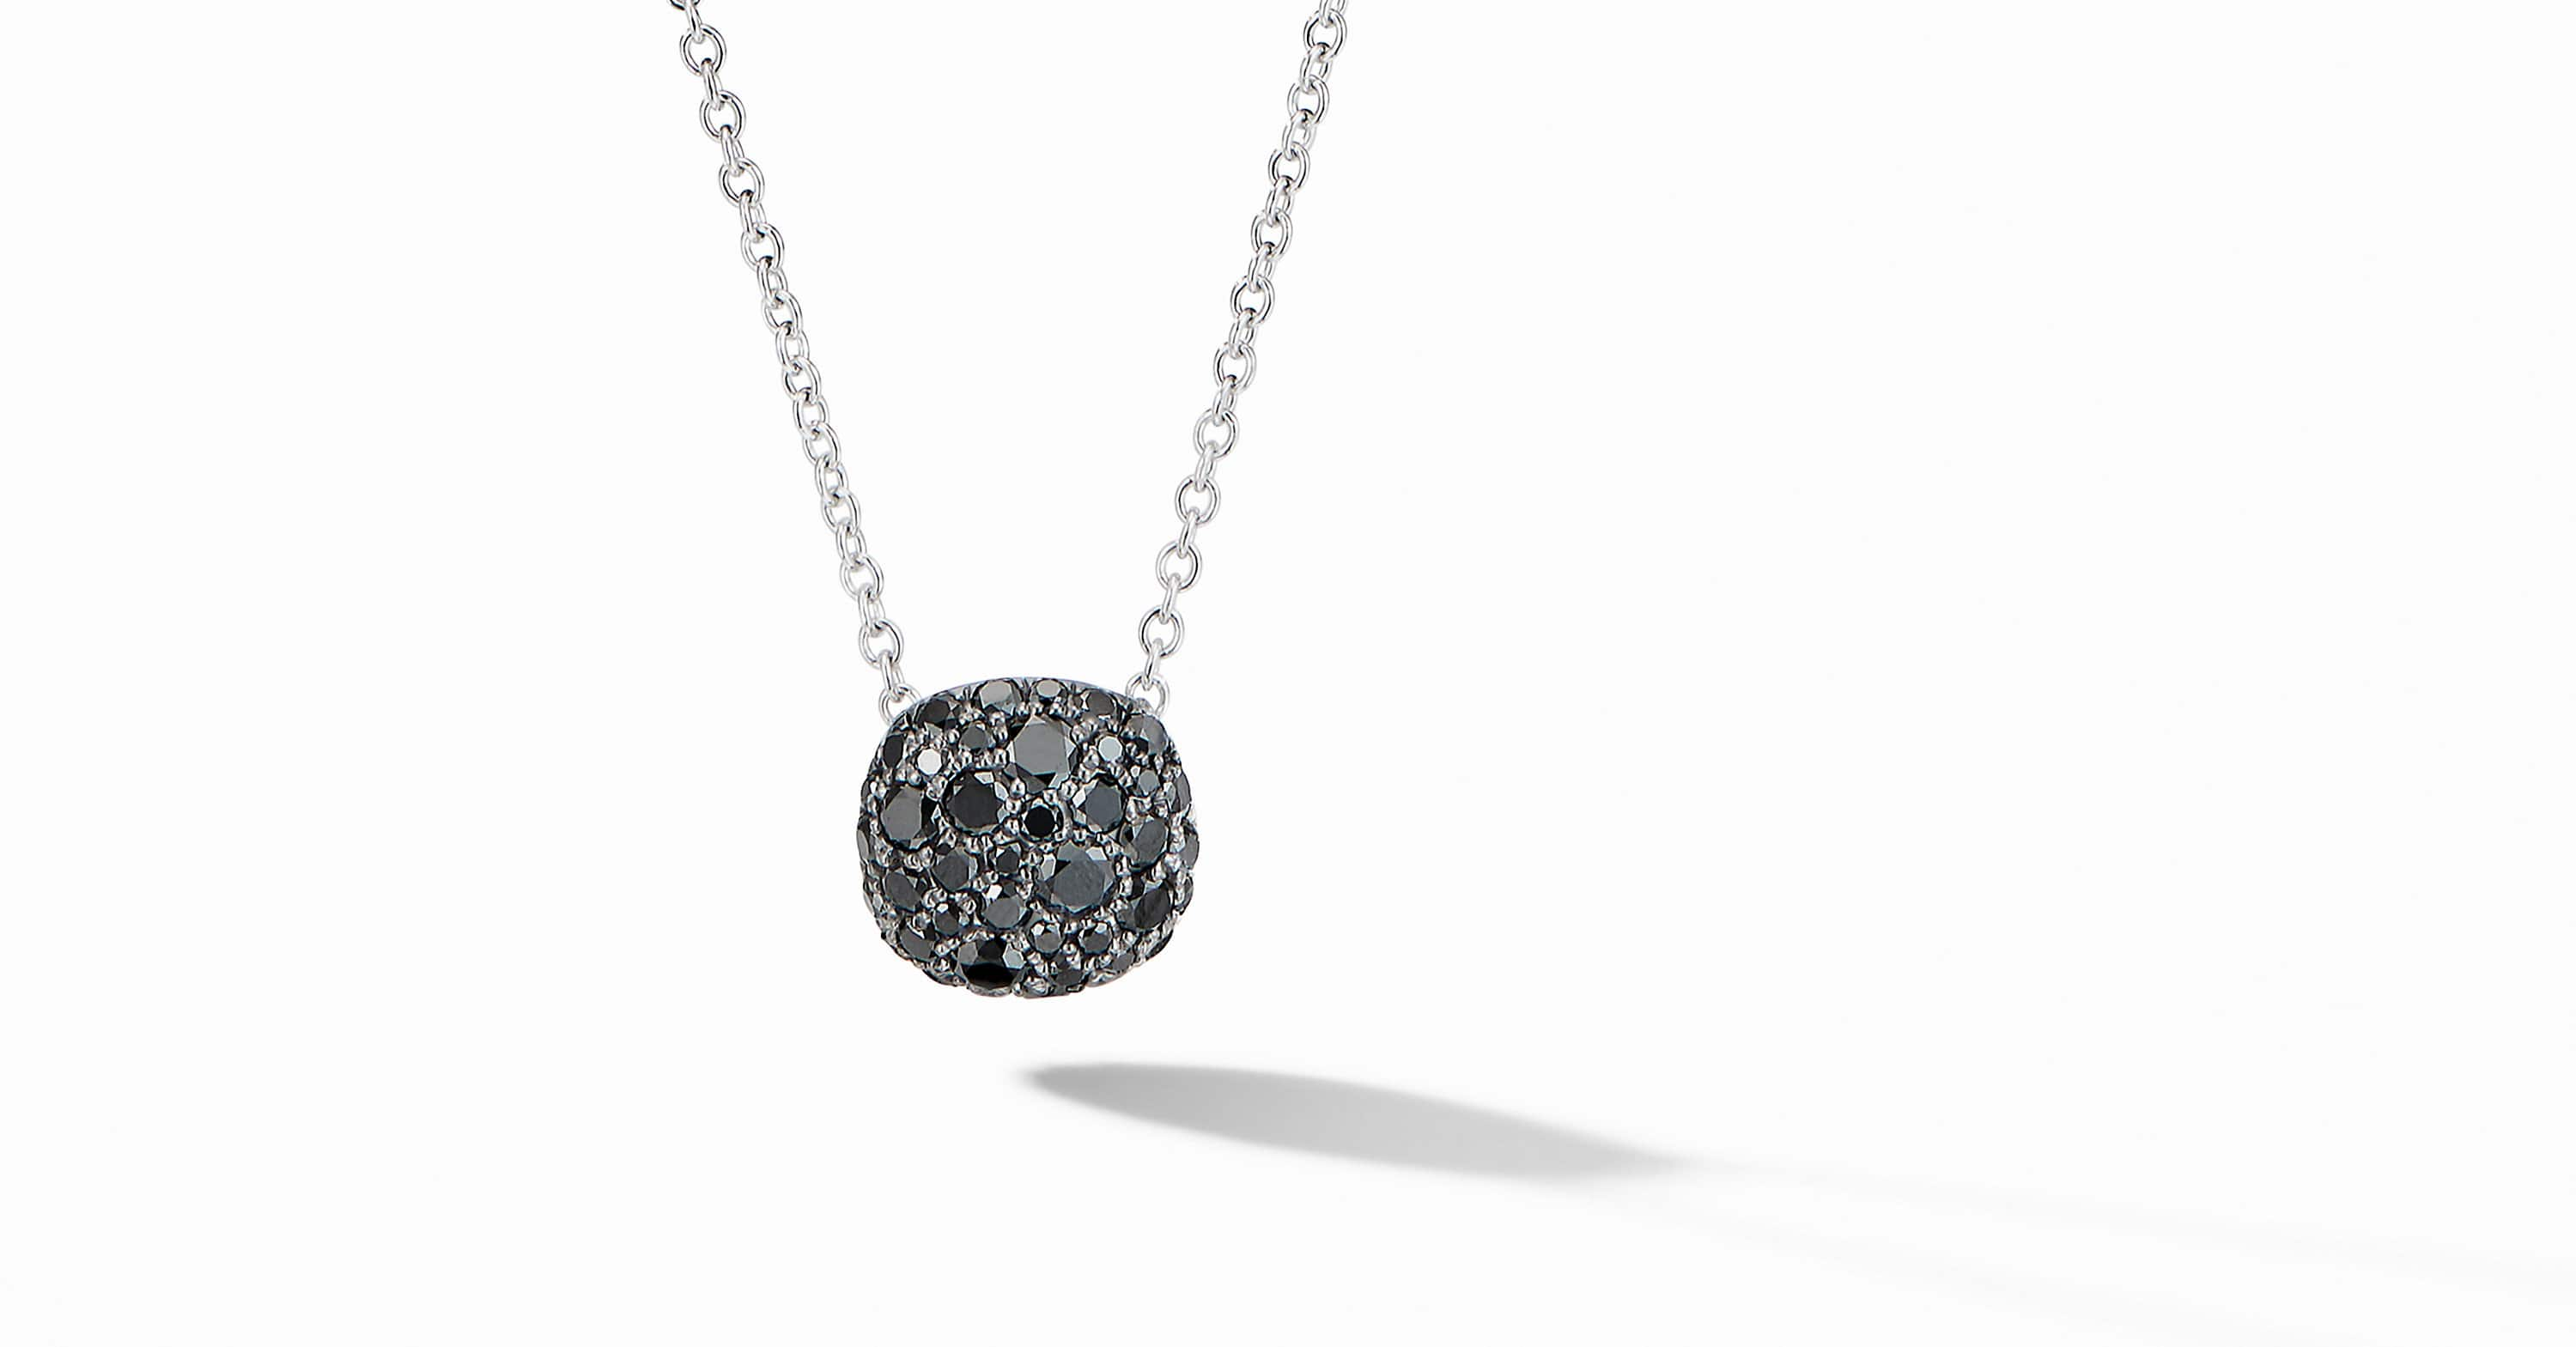 Cushion Stud Pendant Necklace in 18K White Gold with Pavé